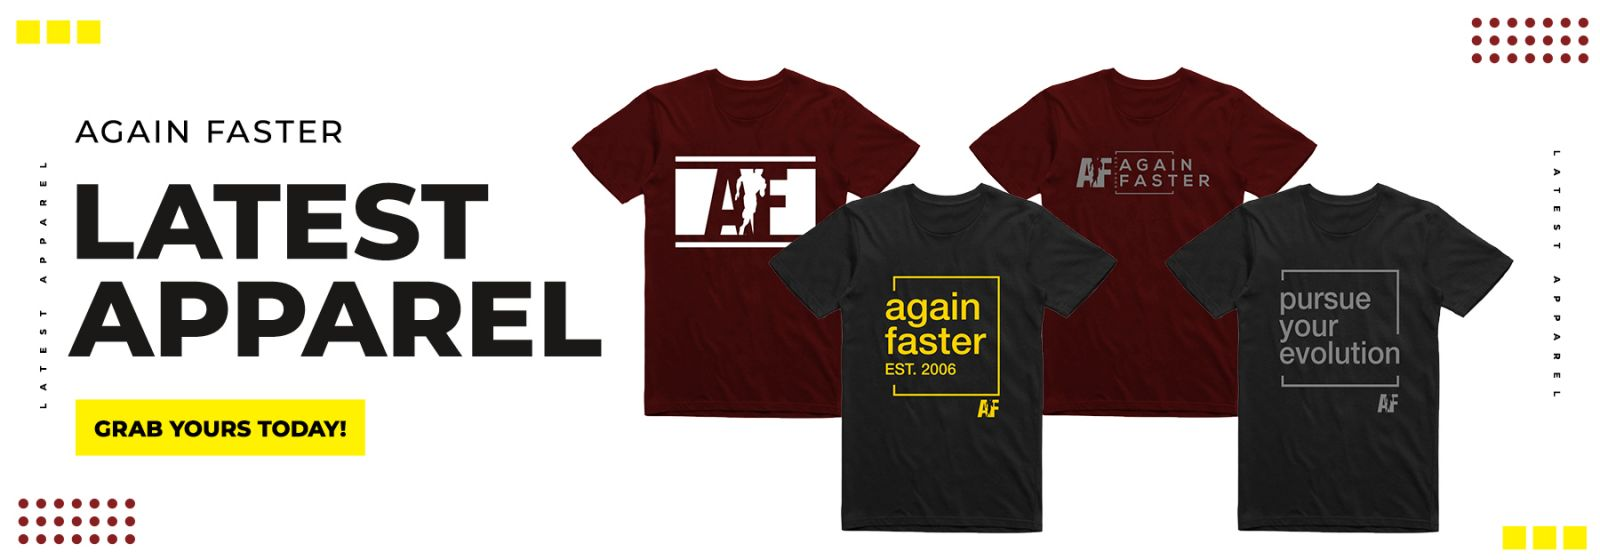 Again Faster Winter 2021 Apparel Collection - Banner